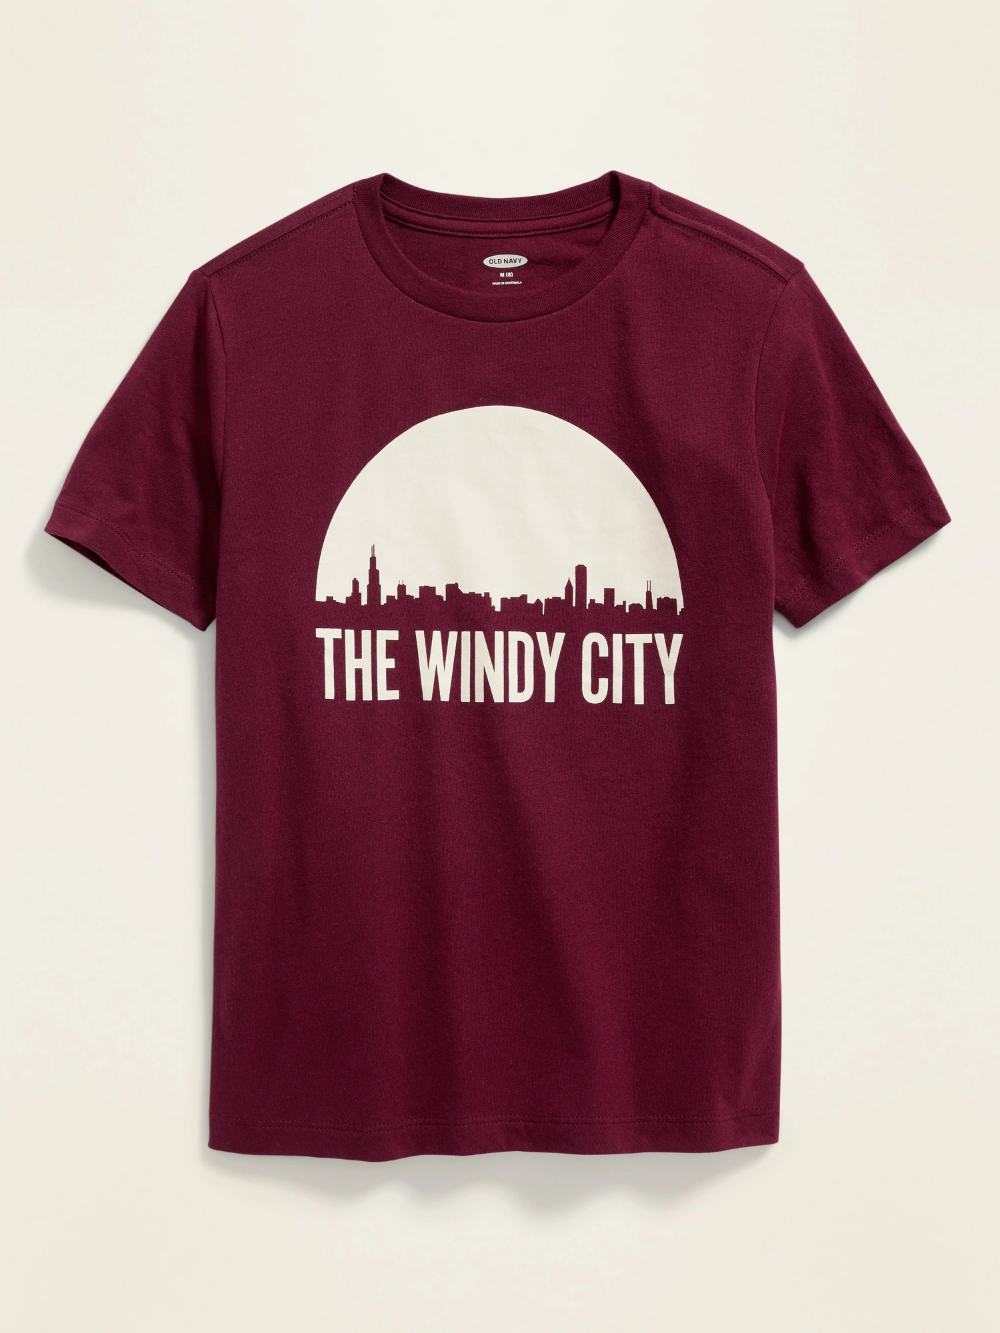 Chicago Graphic Tee for Boys | Old Navy | Graphic tees ...